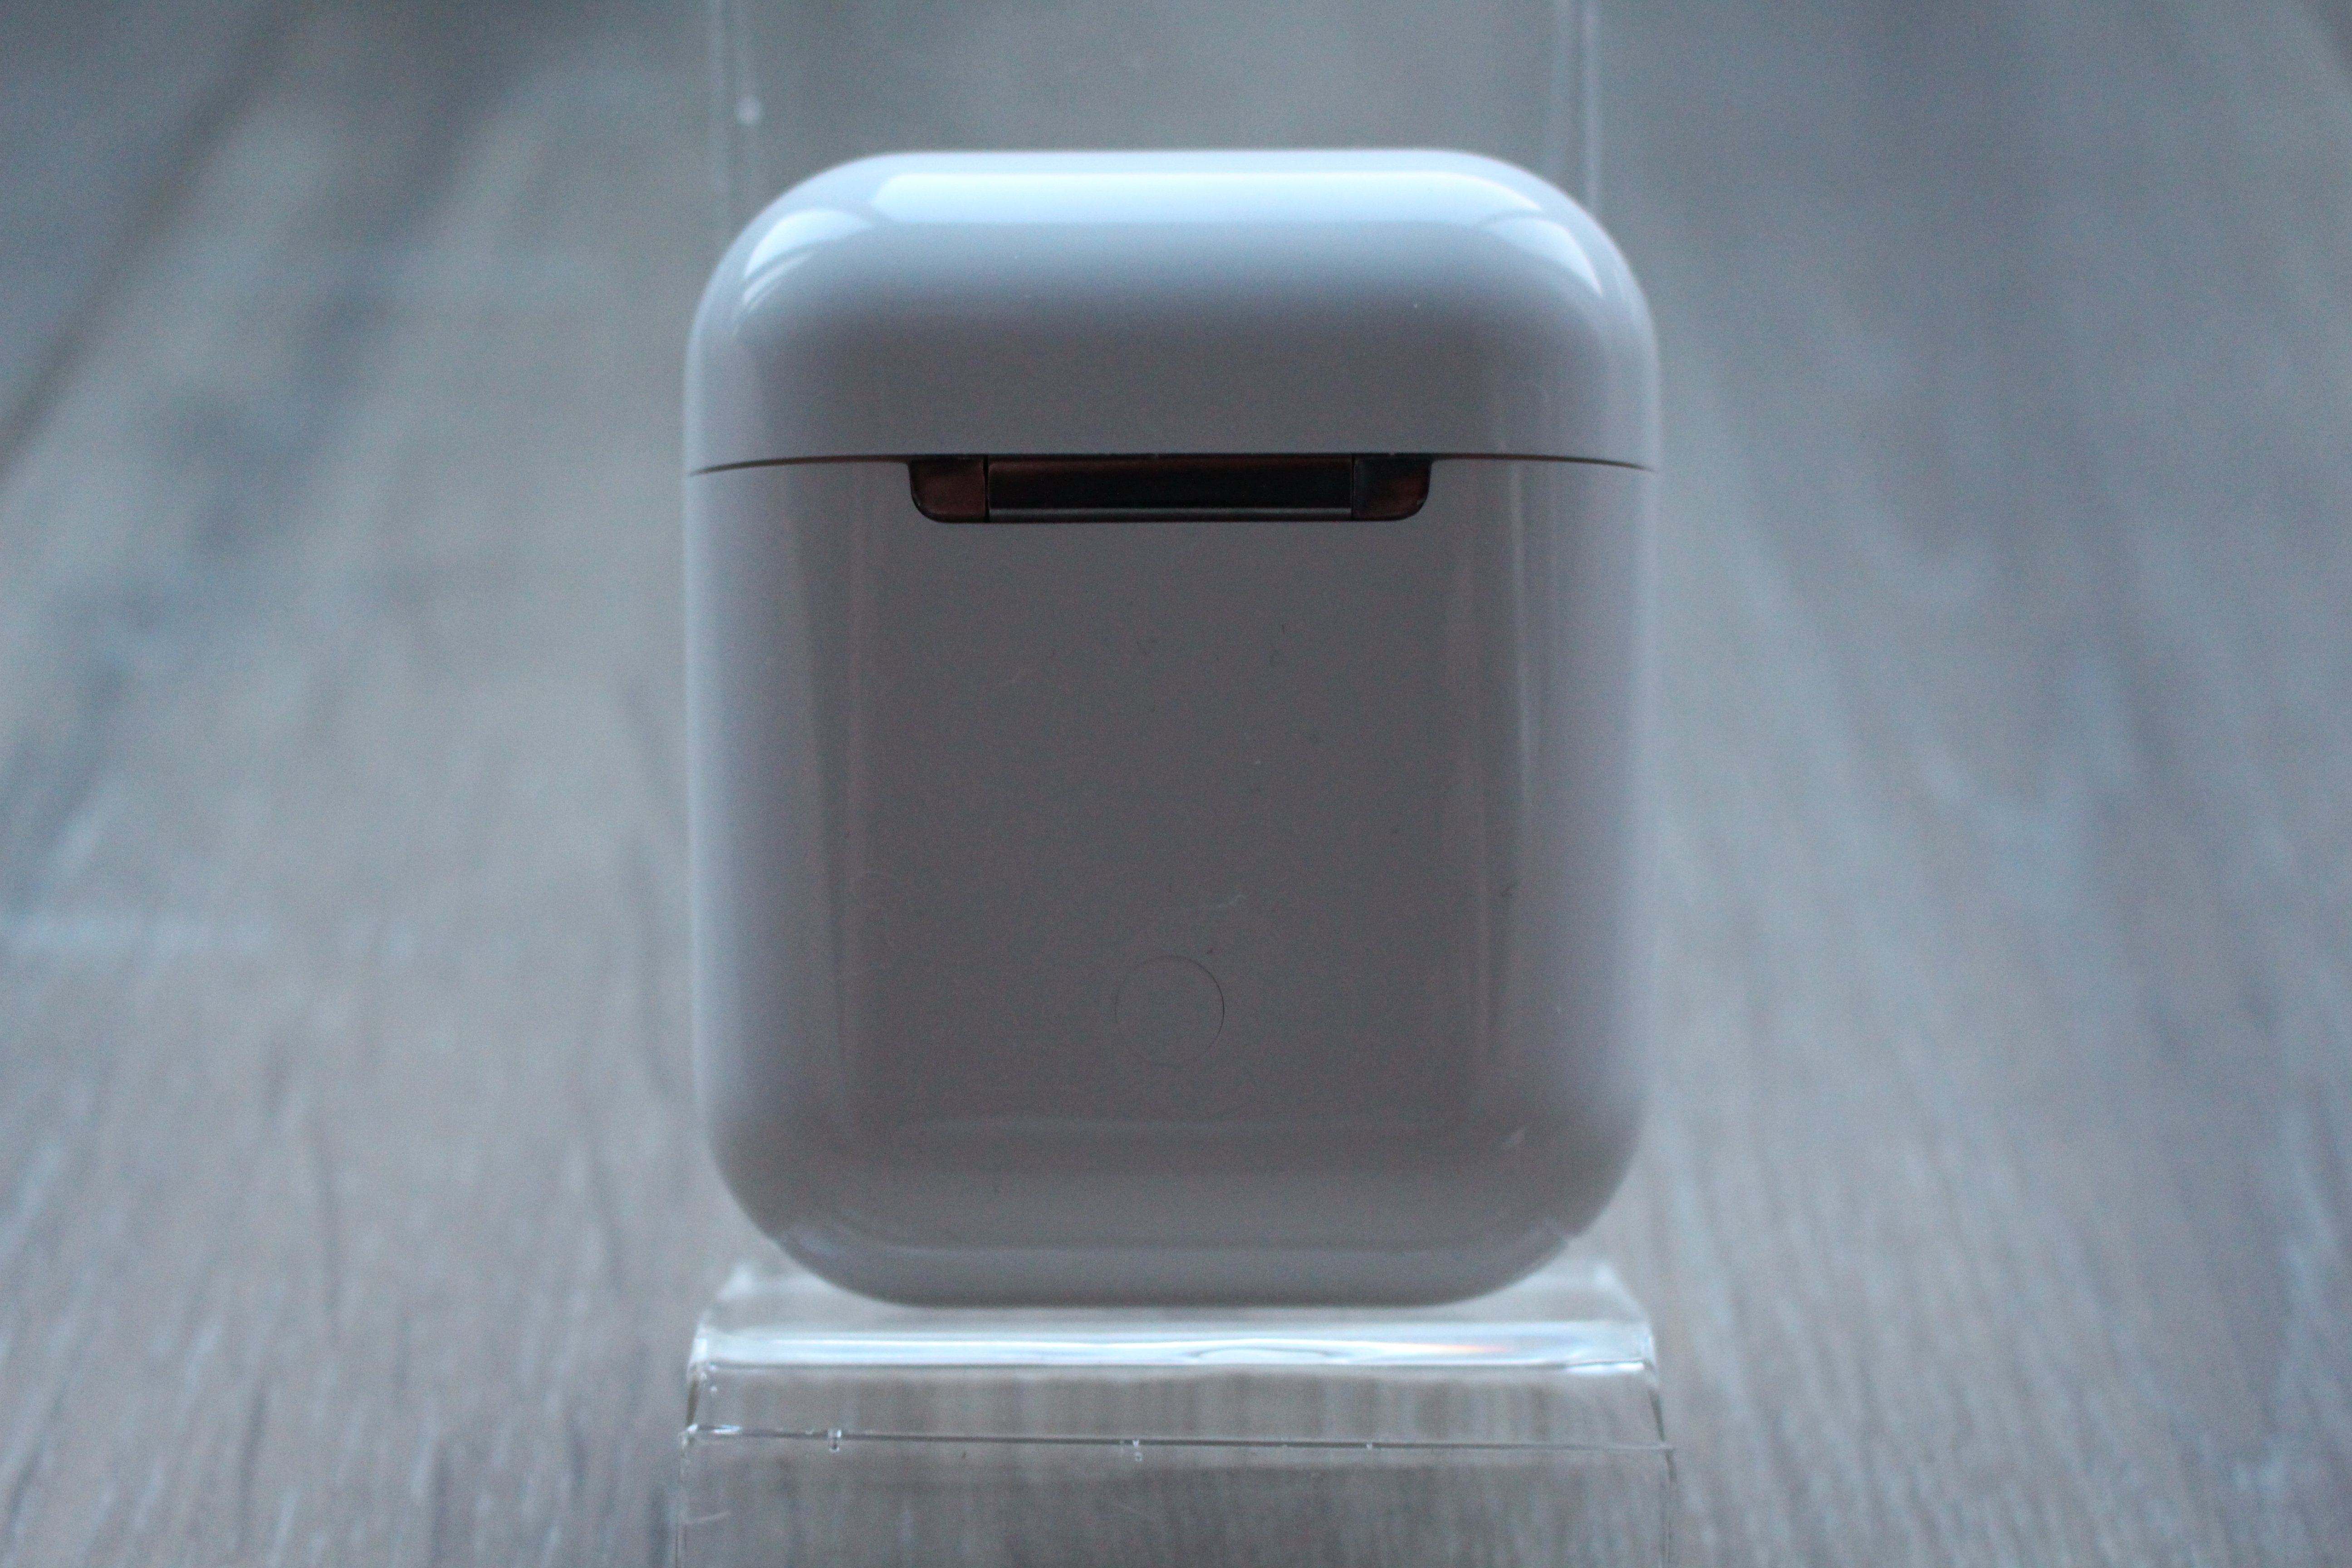 apple airpods 2 back side